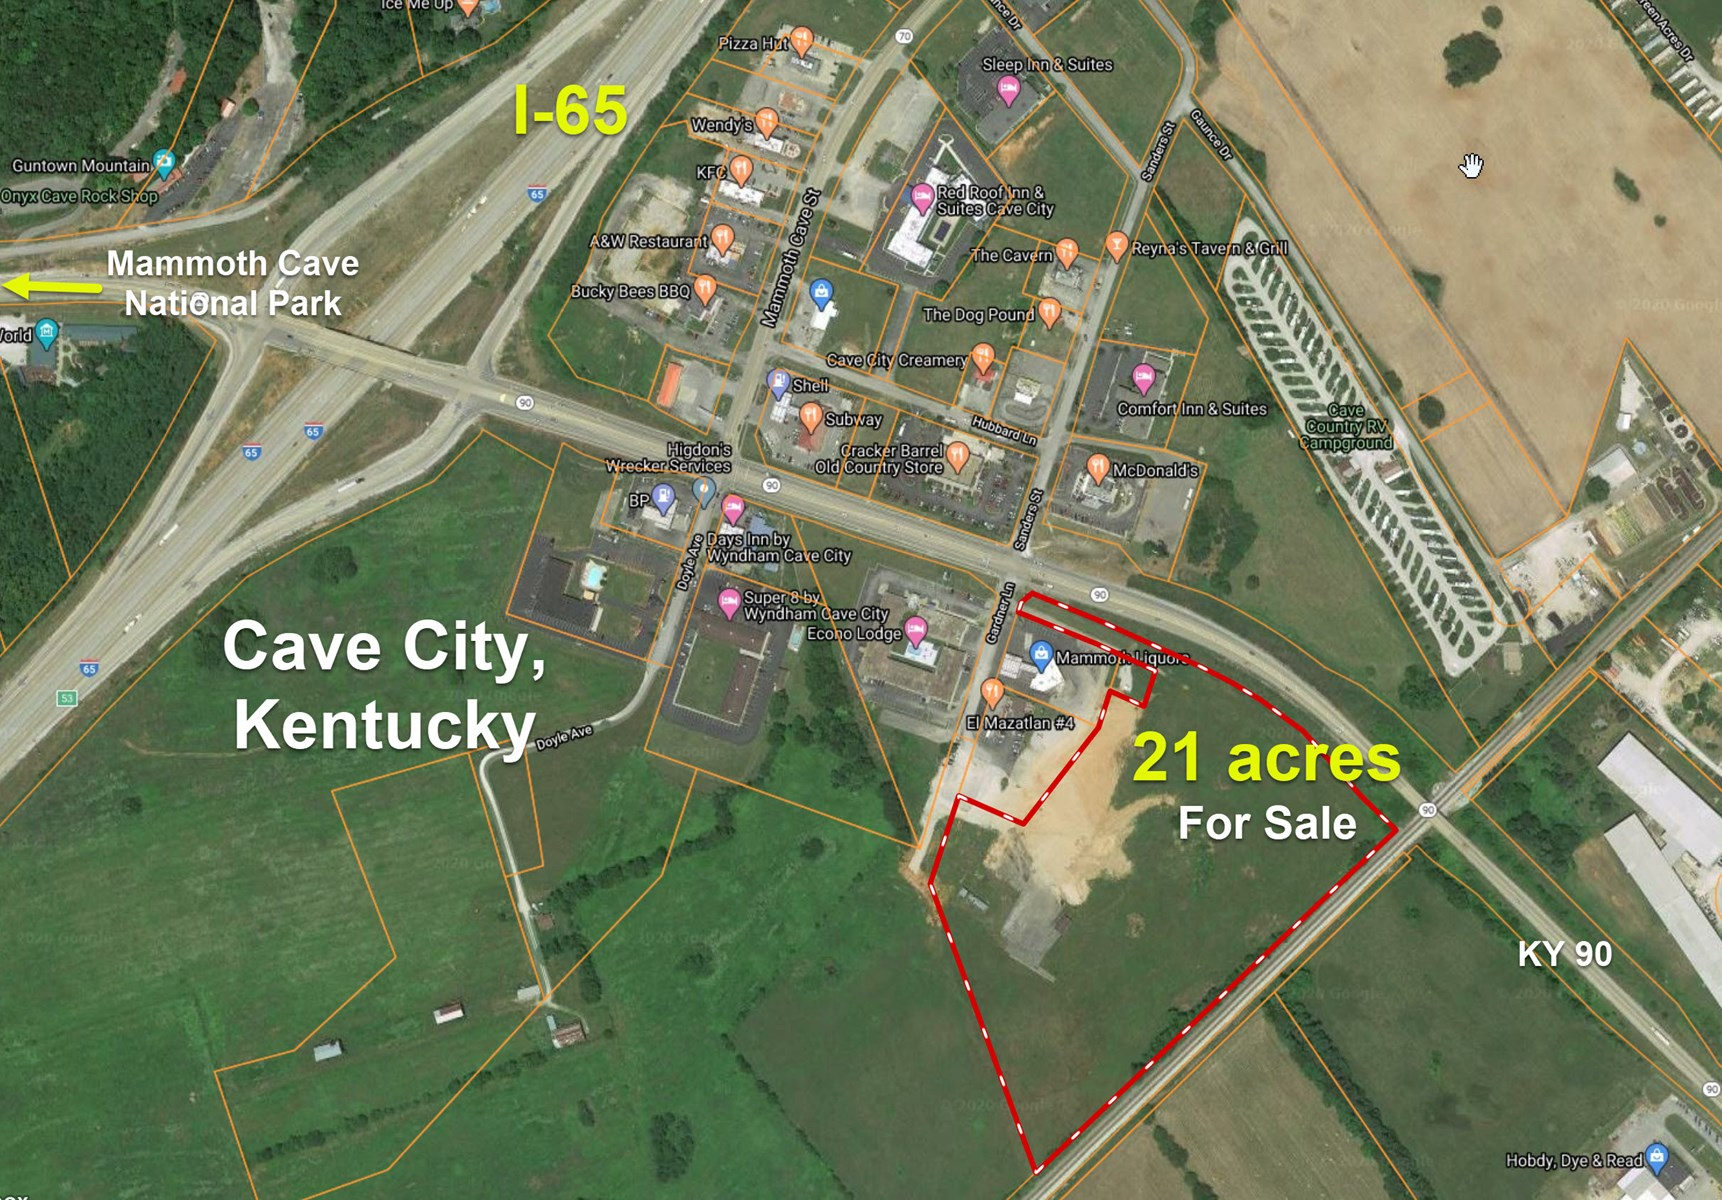 Land for Sale, Opportunity Zone, Cave City KY, Along I-65